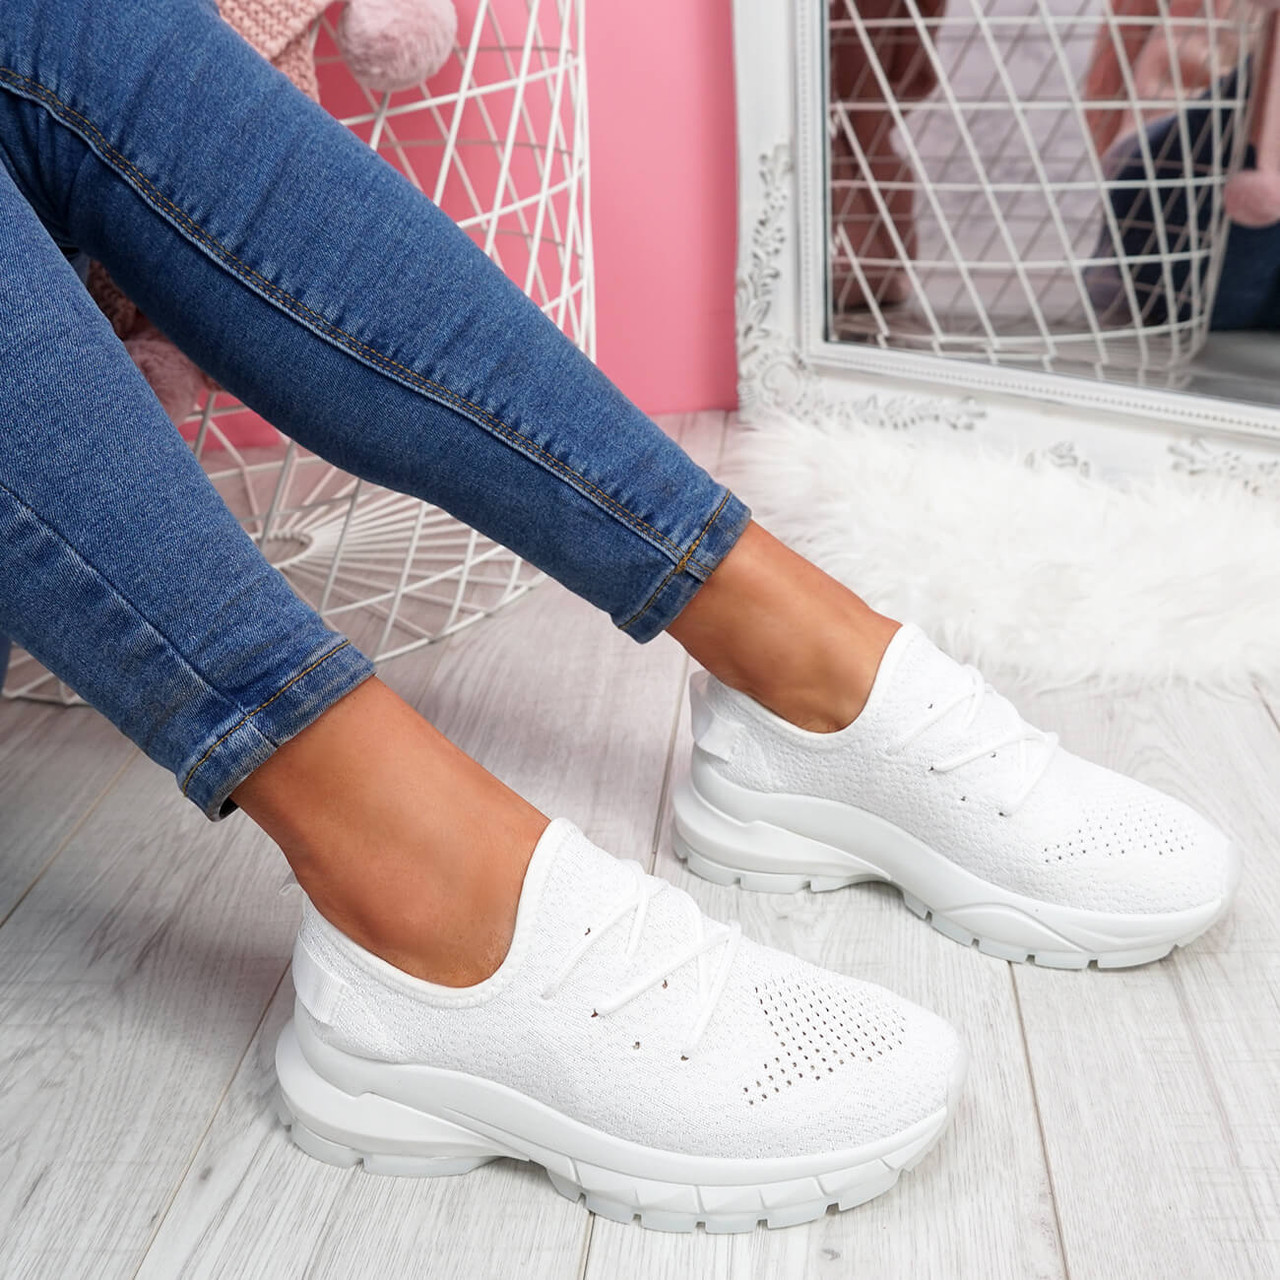 size 2 chunky trainers